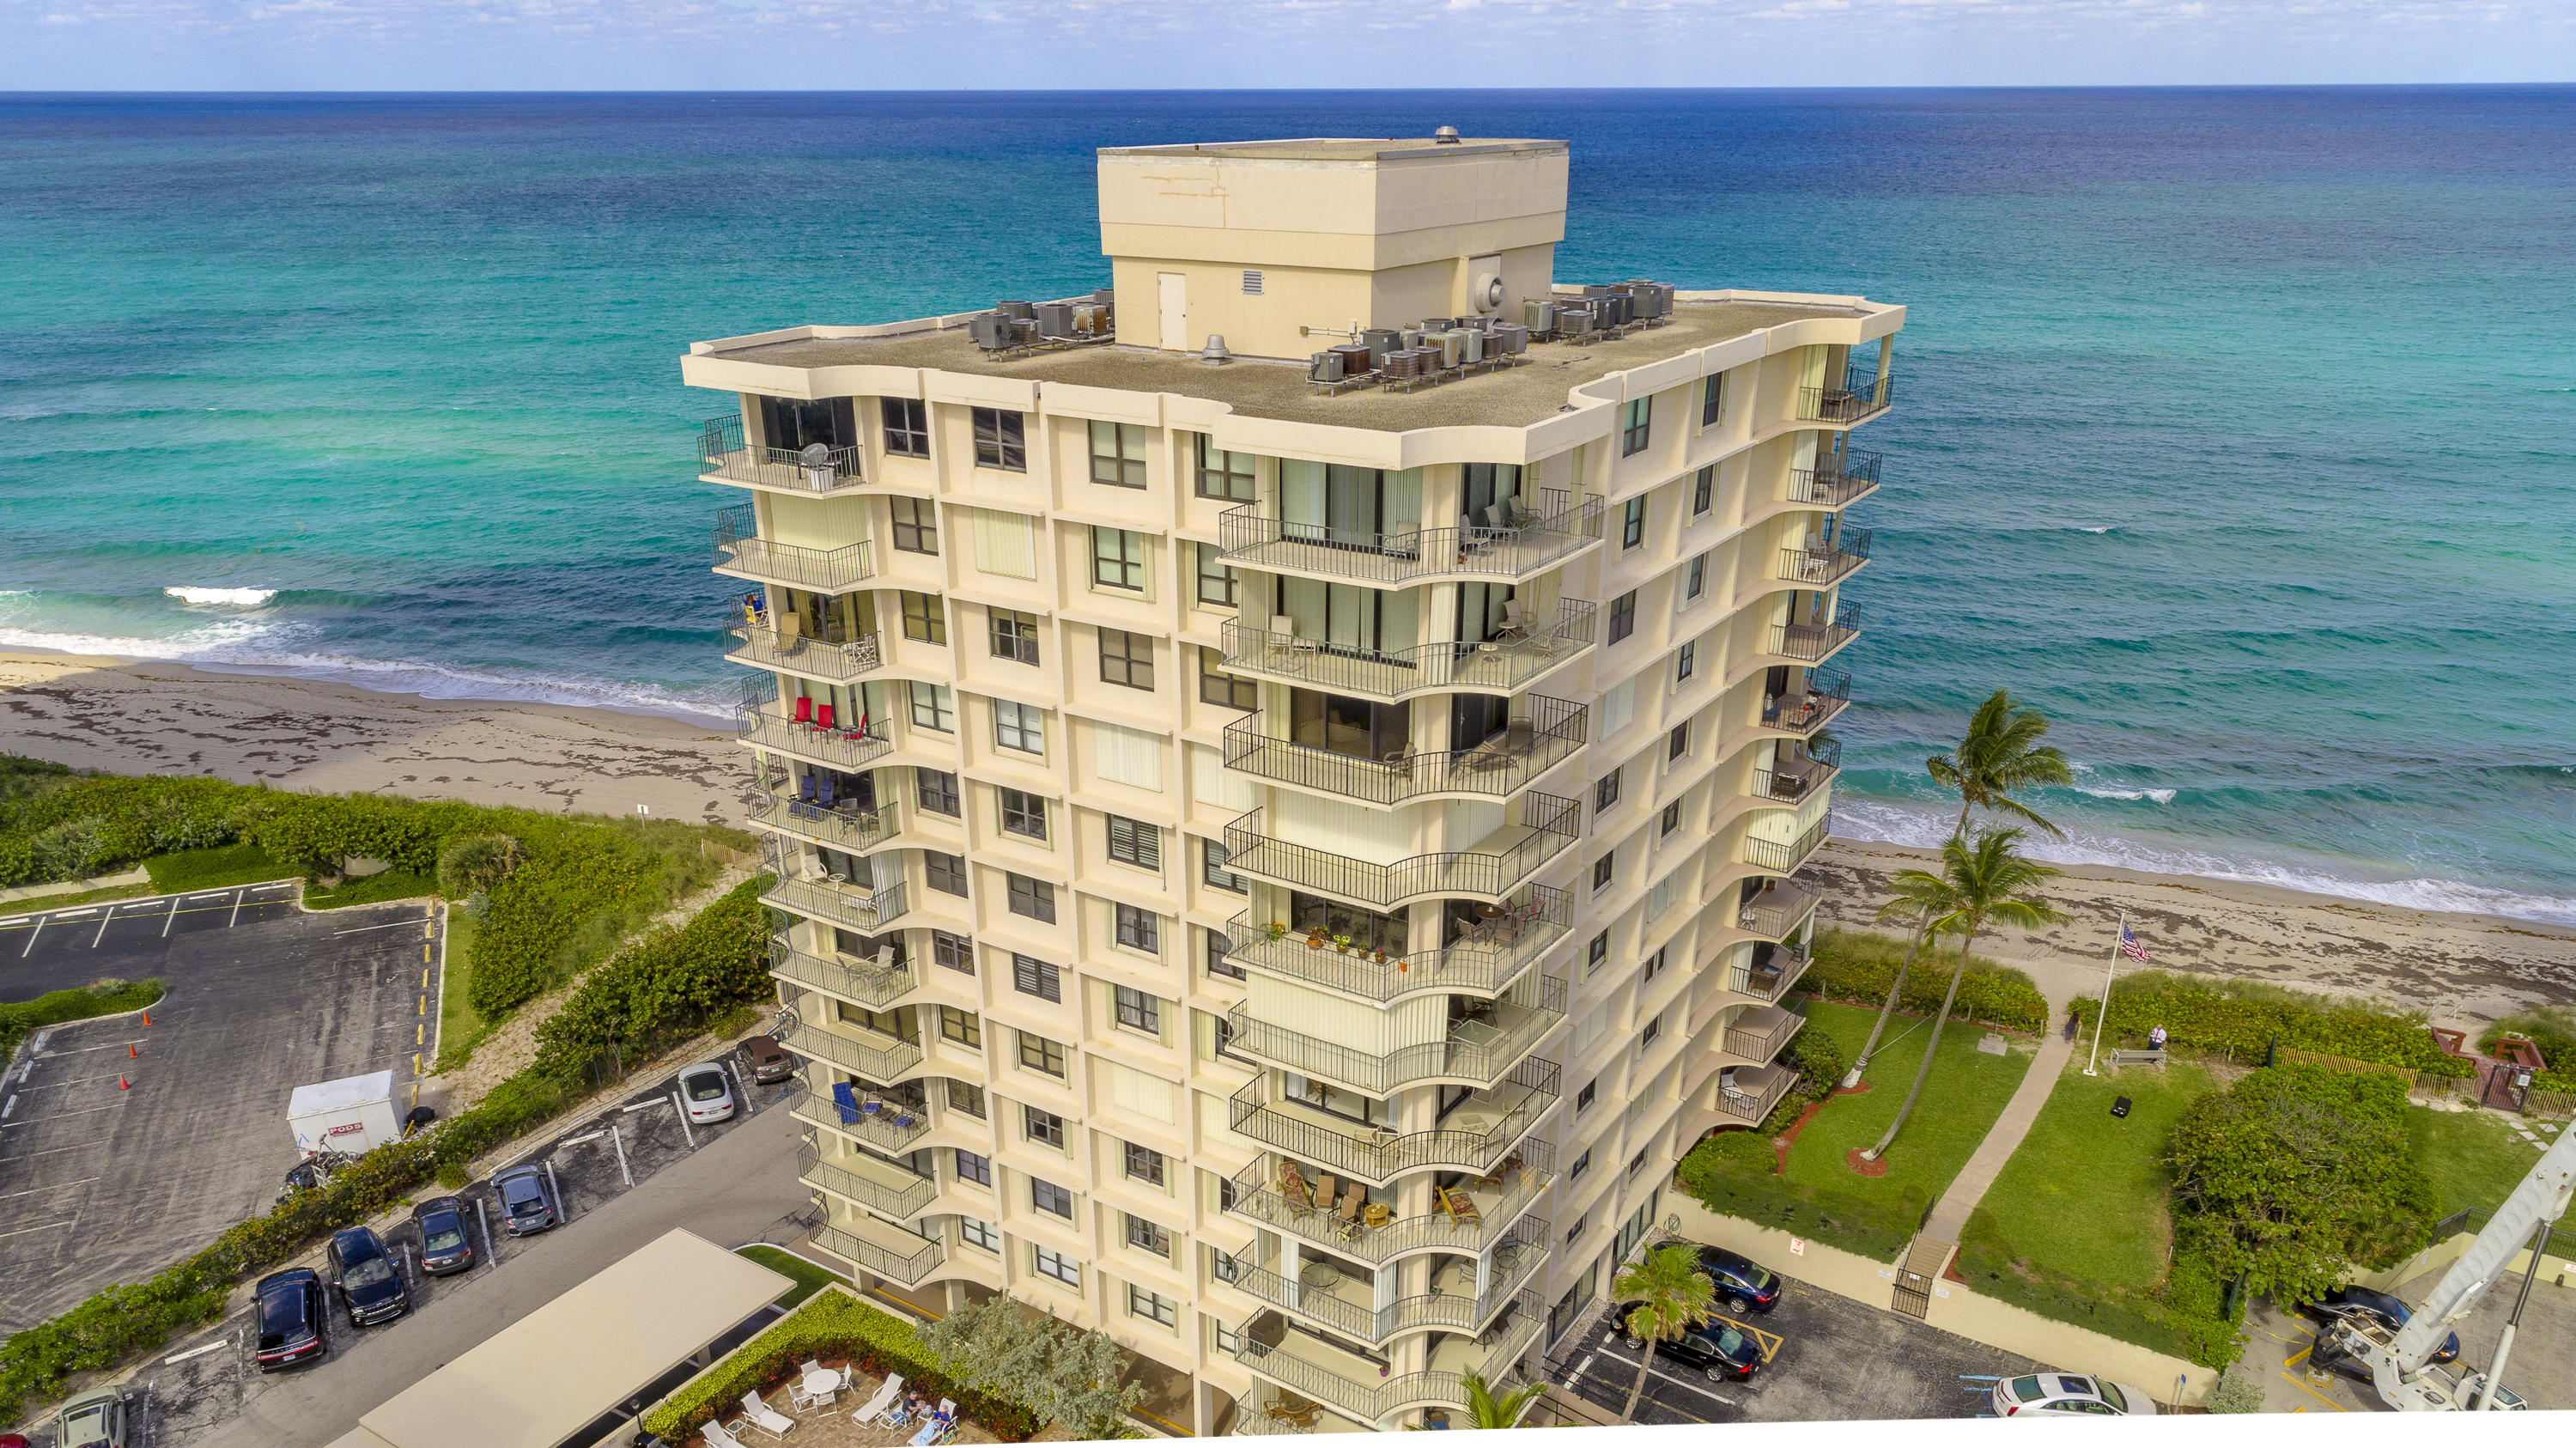 New Home for sale at 5480 Ocean Drive in Singer Island